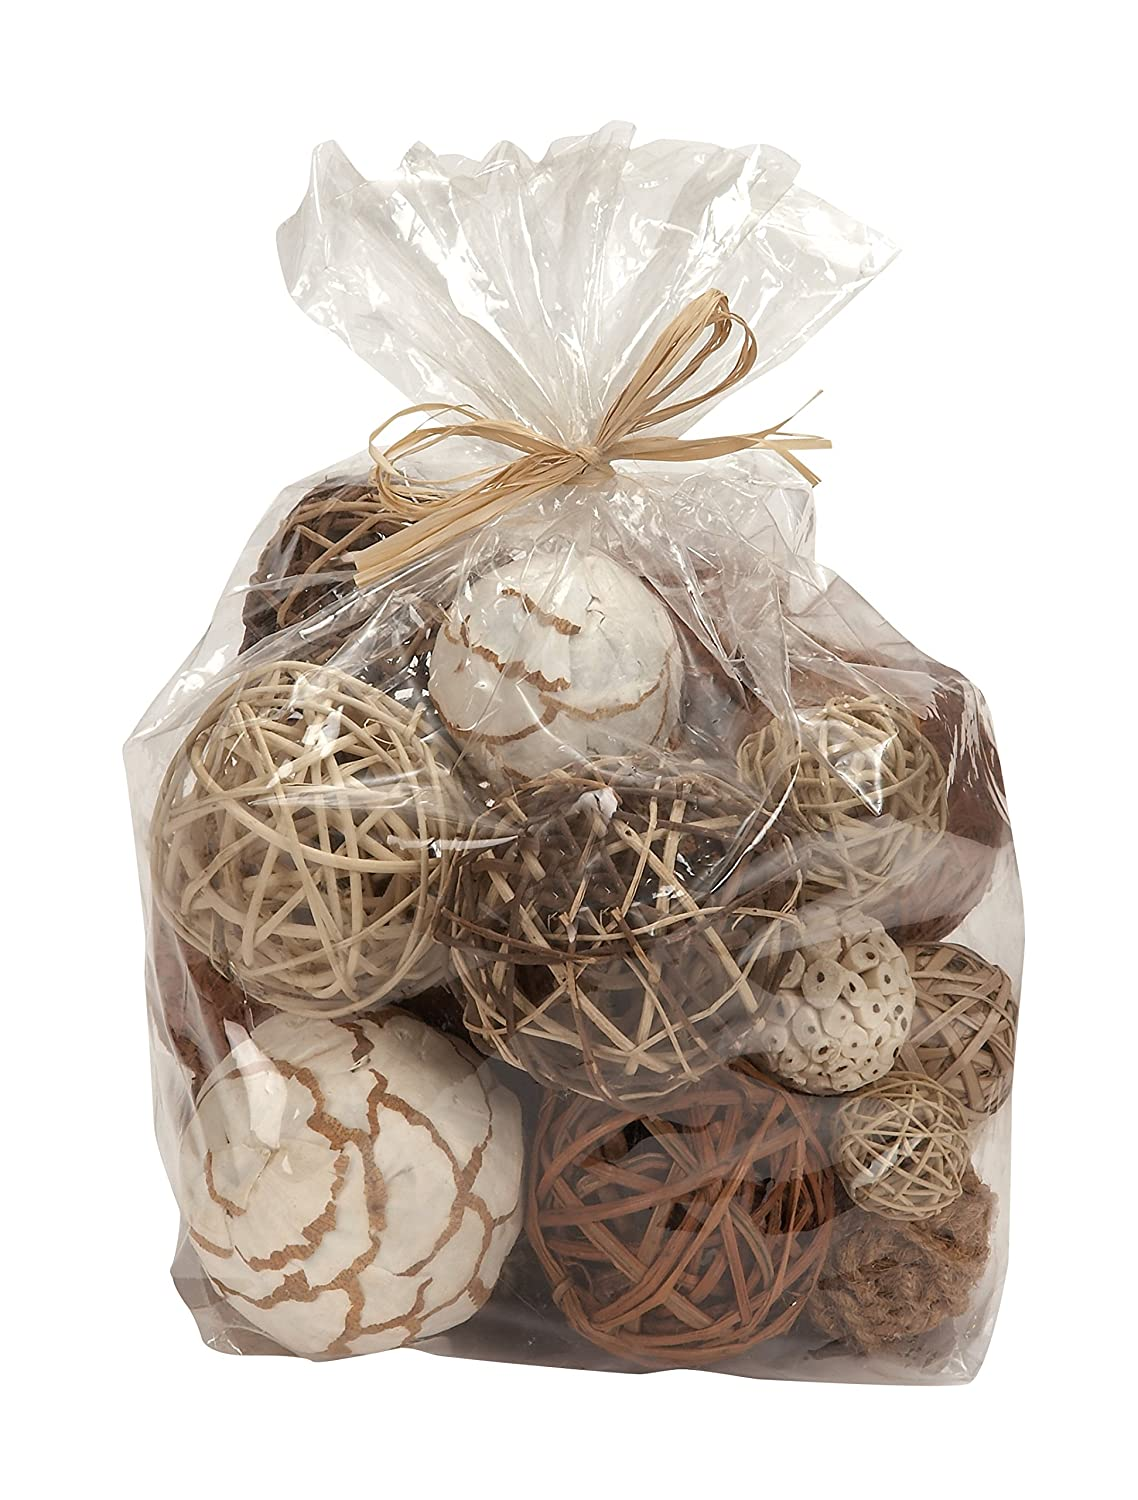 decorative balls for bowls Amazon.com: Bag of Natural Fiber Decorative Balls Spheres Orbs  decorative balls for bowls